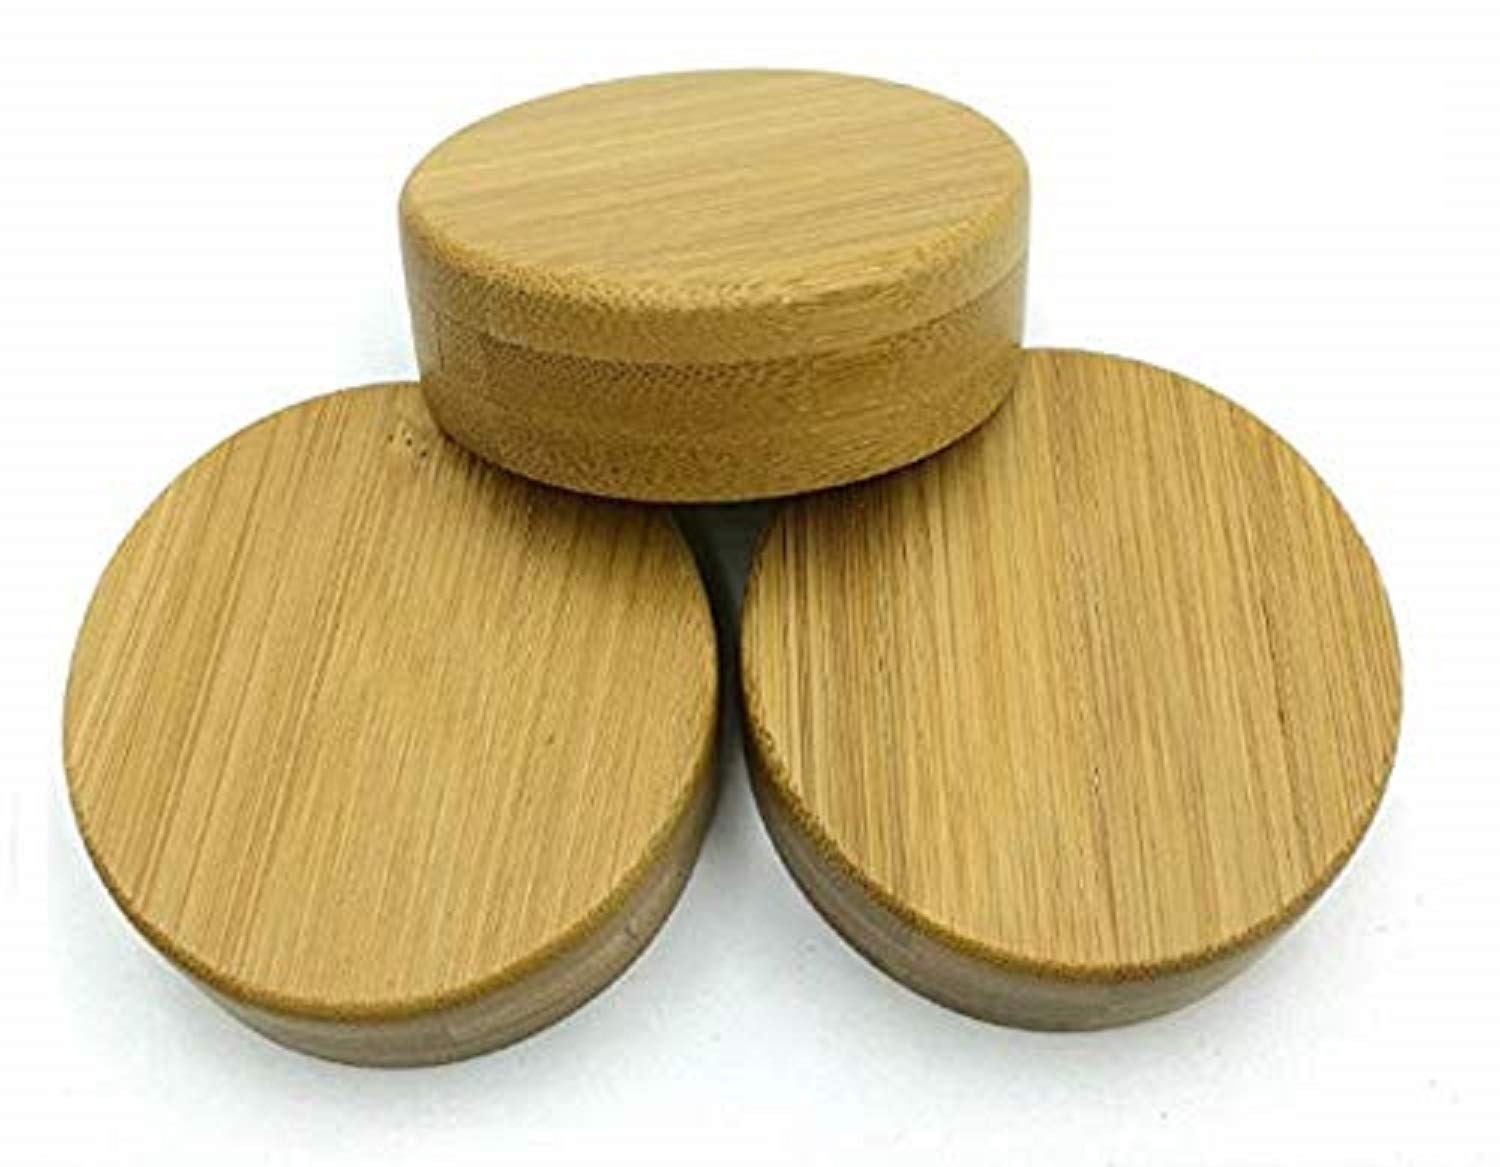 THINKCHANCES Natural Color Decorative Bamboo Lids for Mason, Ball, Canning Jars (3 Pack, Wide Mouth)